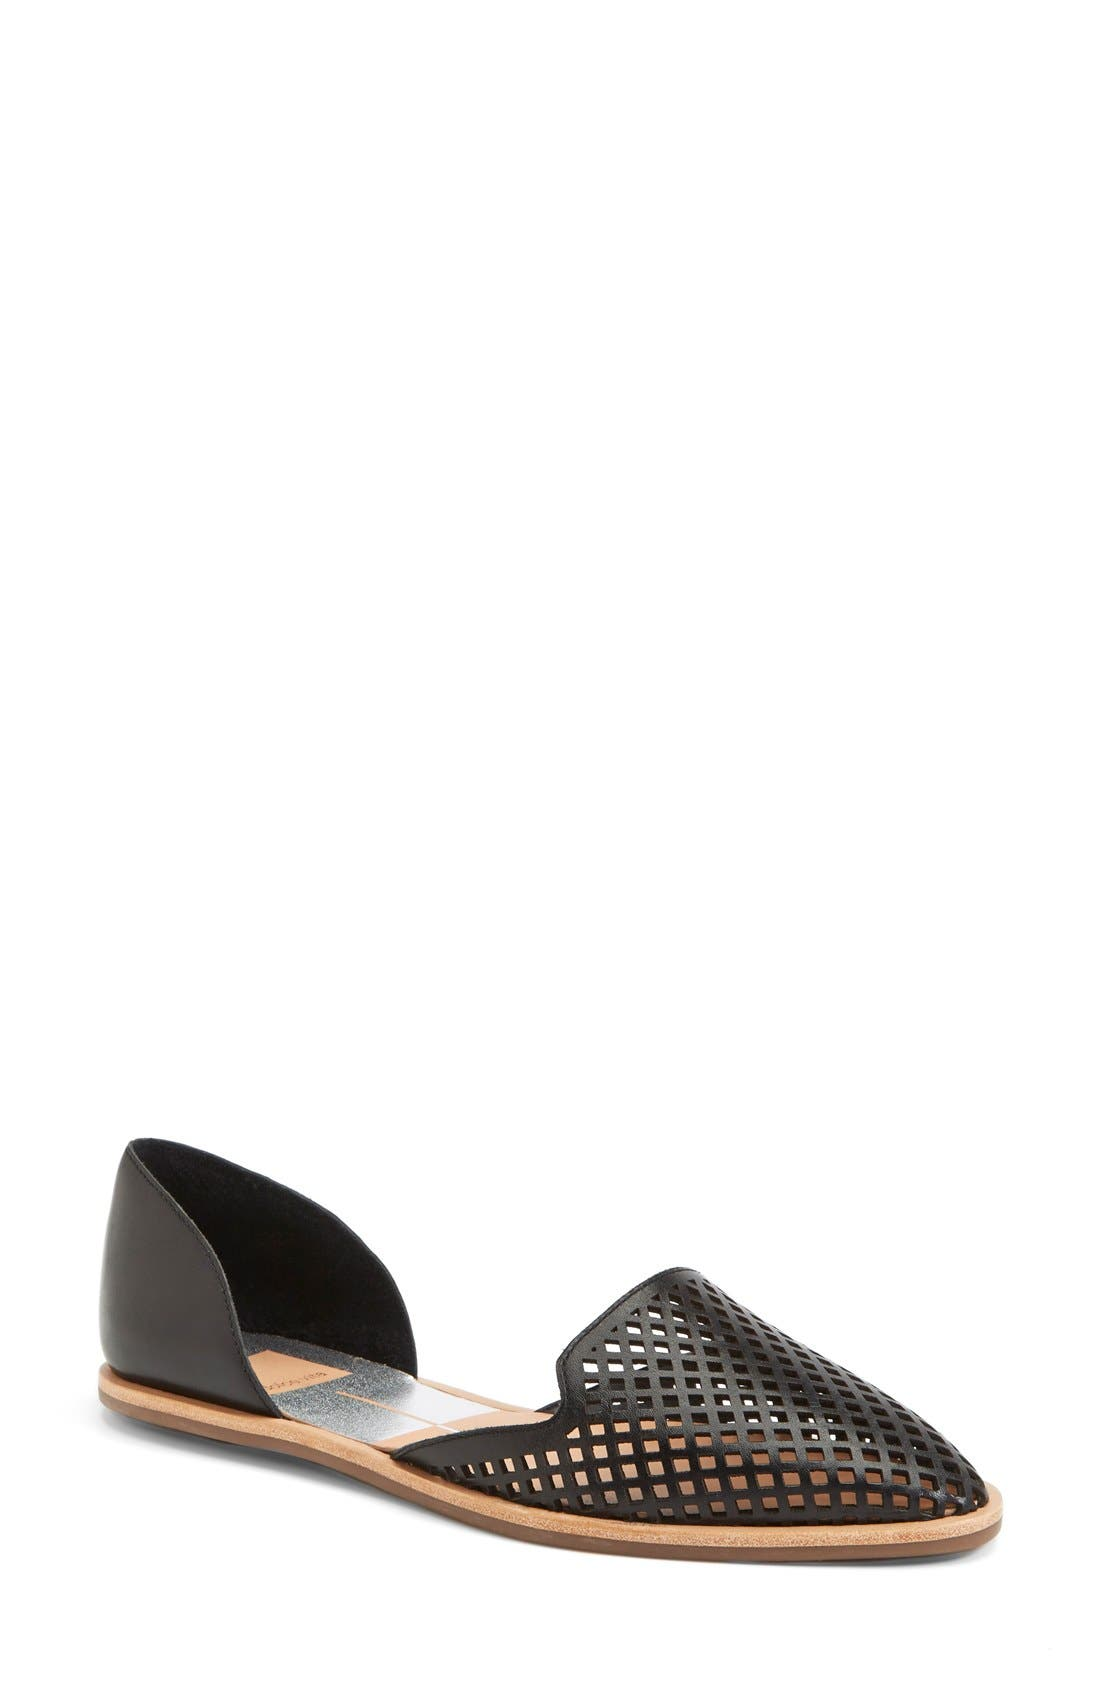 Main Image - Dolce Vita 'Laynie' d'Orsay Flat (Women)